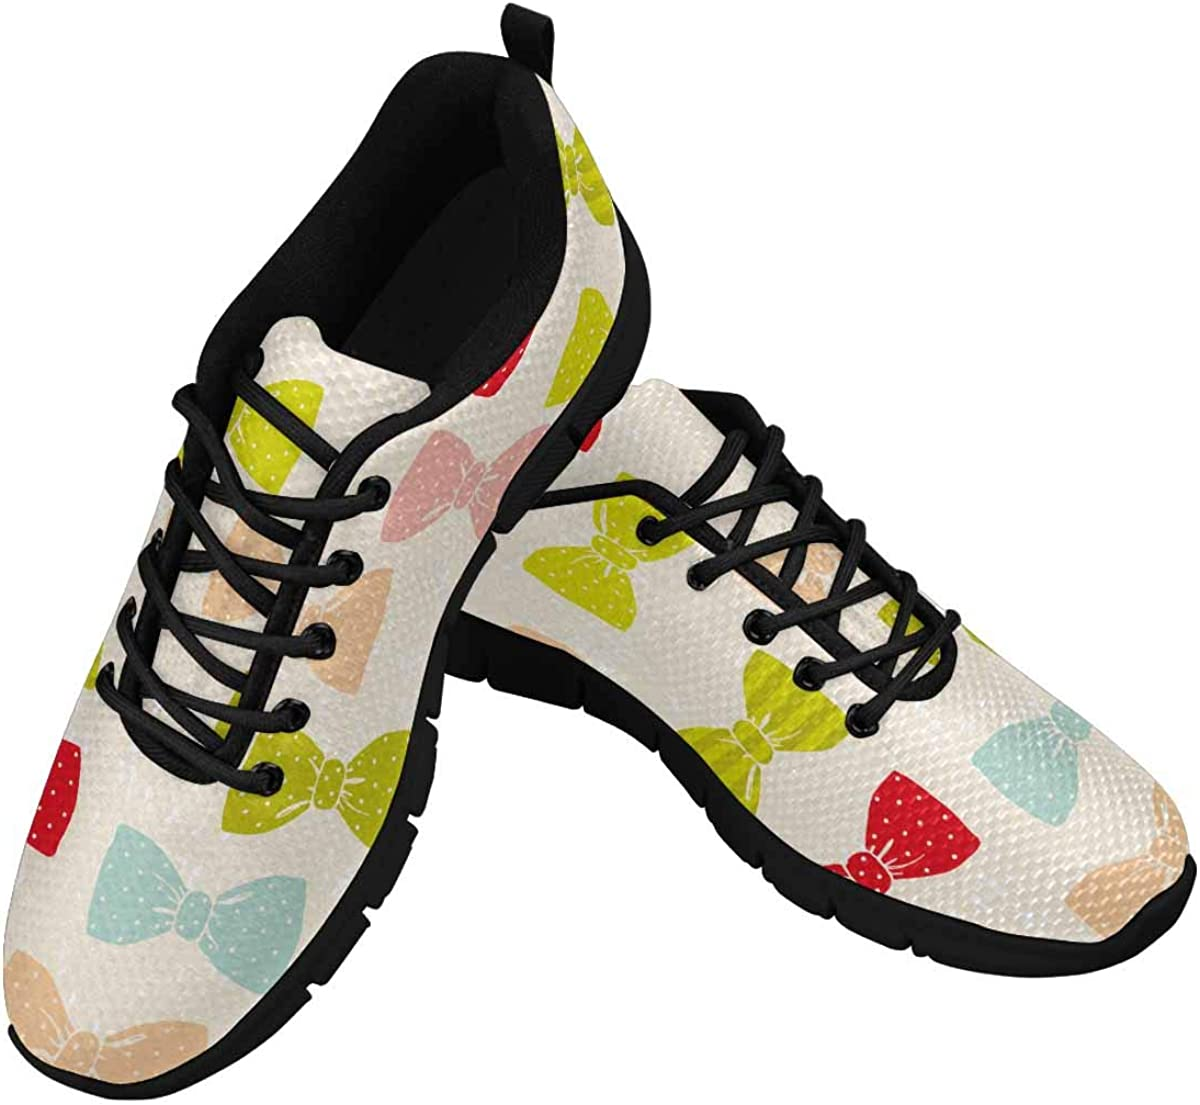 INTERESTPRINT Colorful Red Blue Pink Bow Ties Women's Lace Up Running Comfort Sports Sneakers